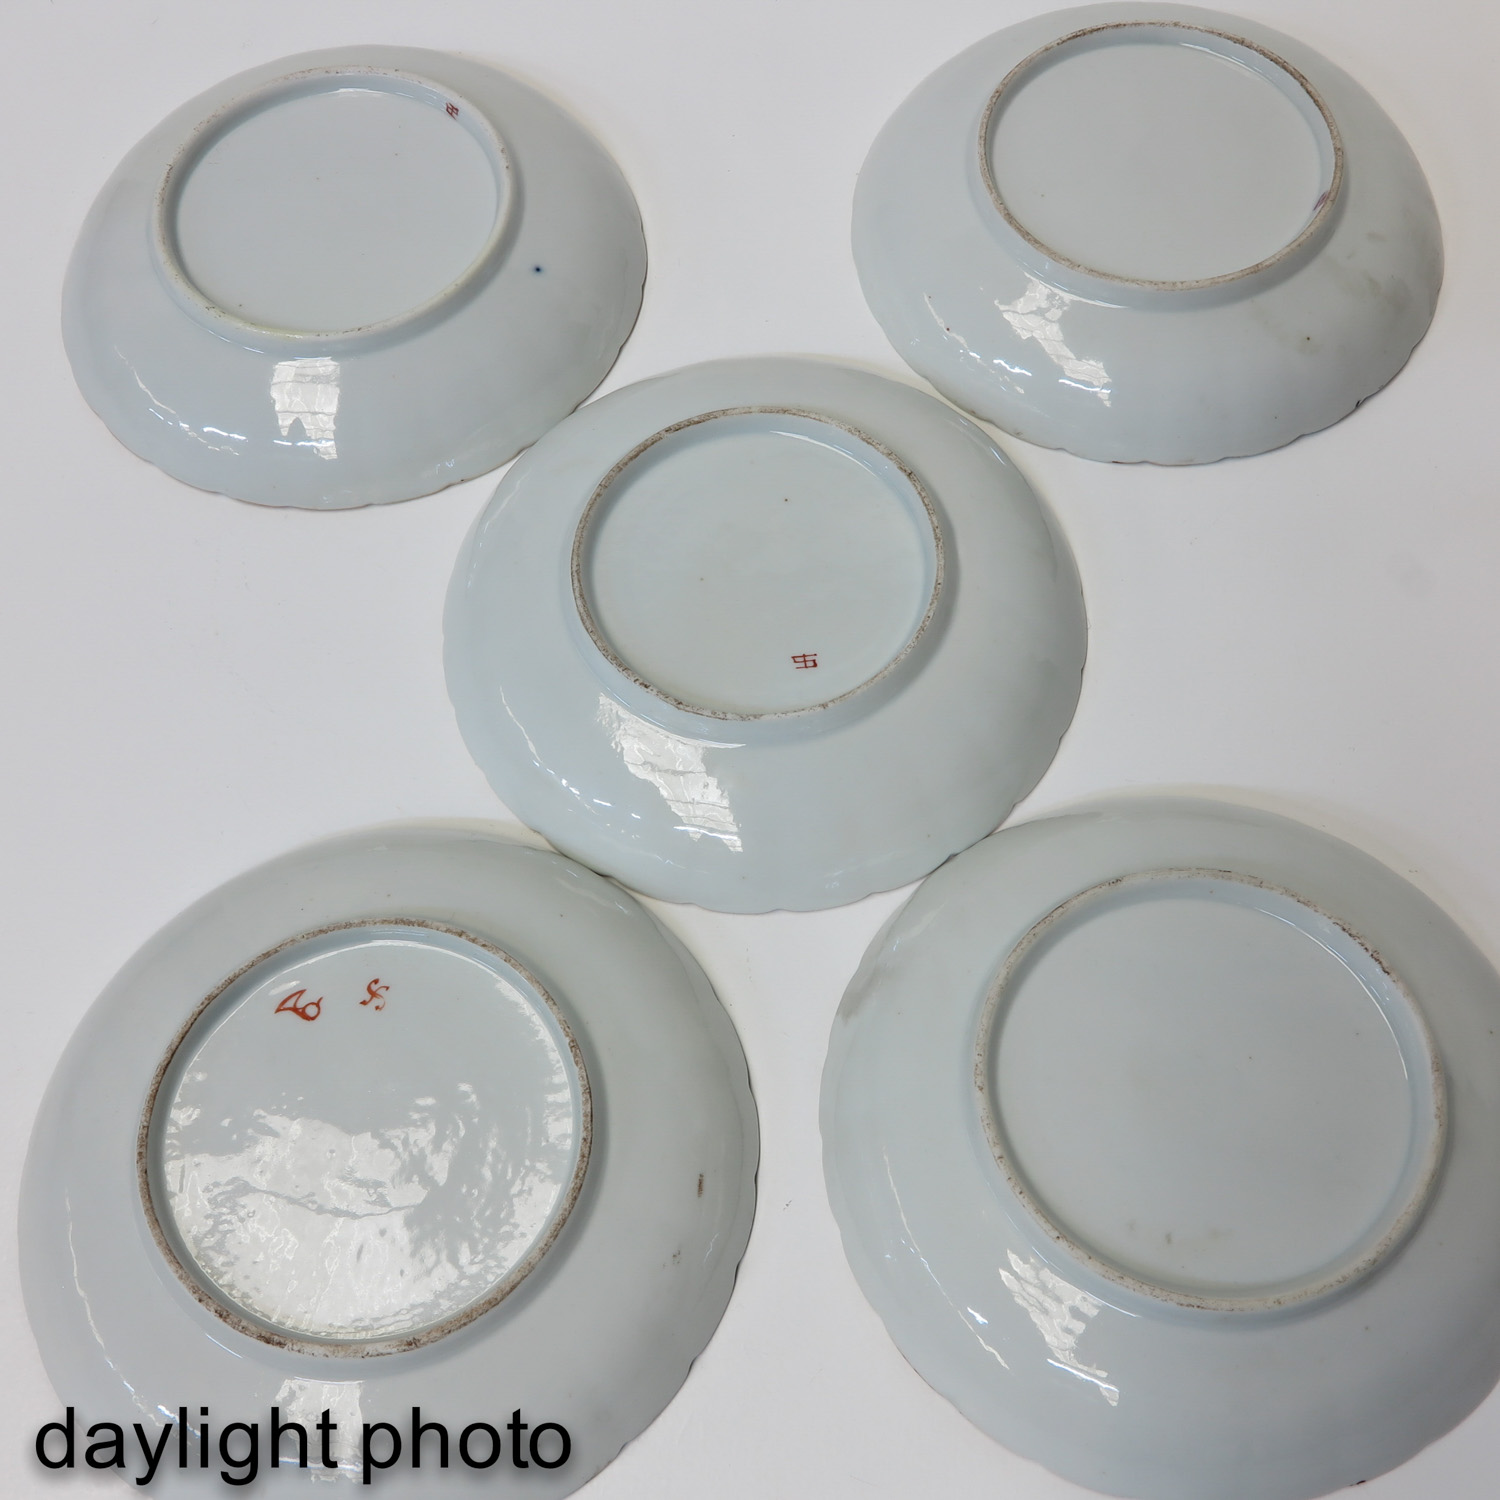 A Lot of 7 Small Plates - Image 10 of 10